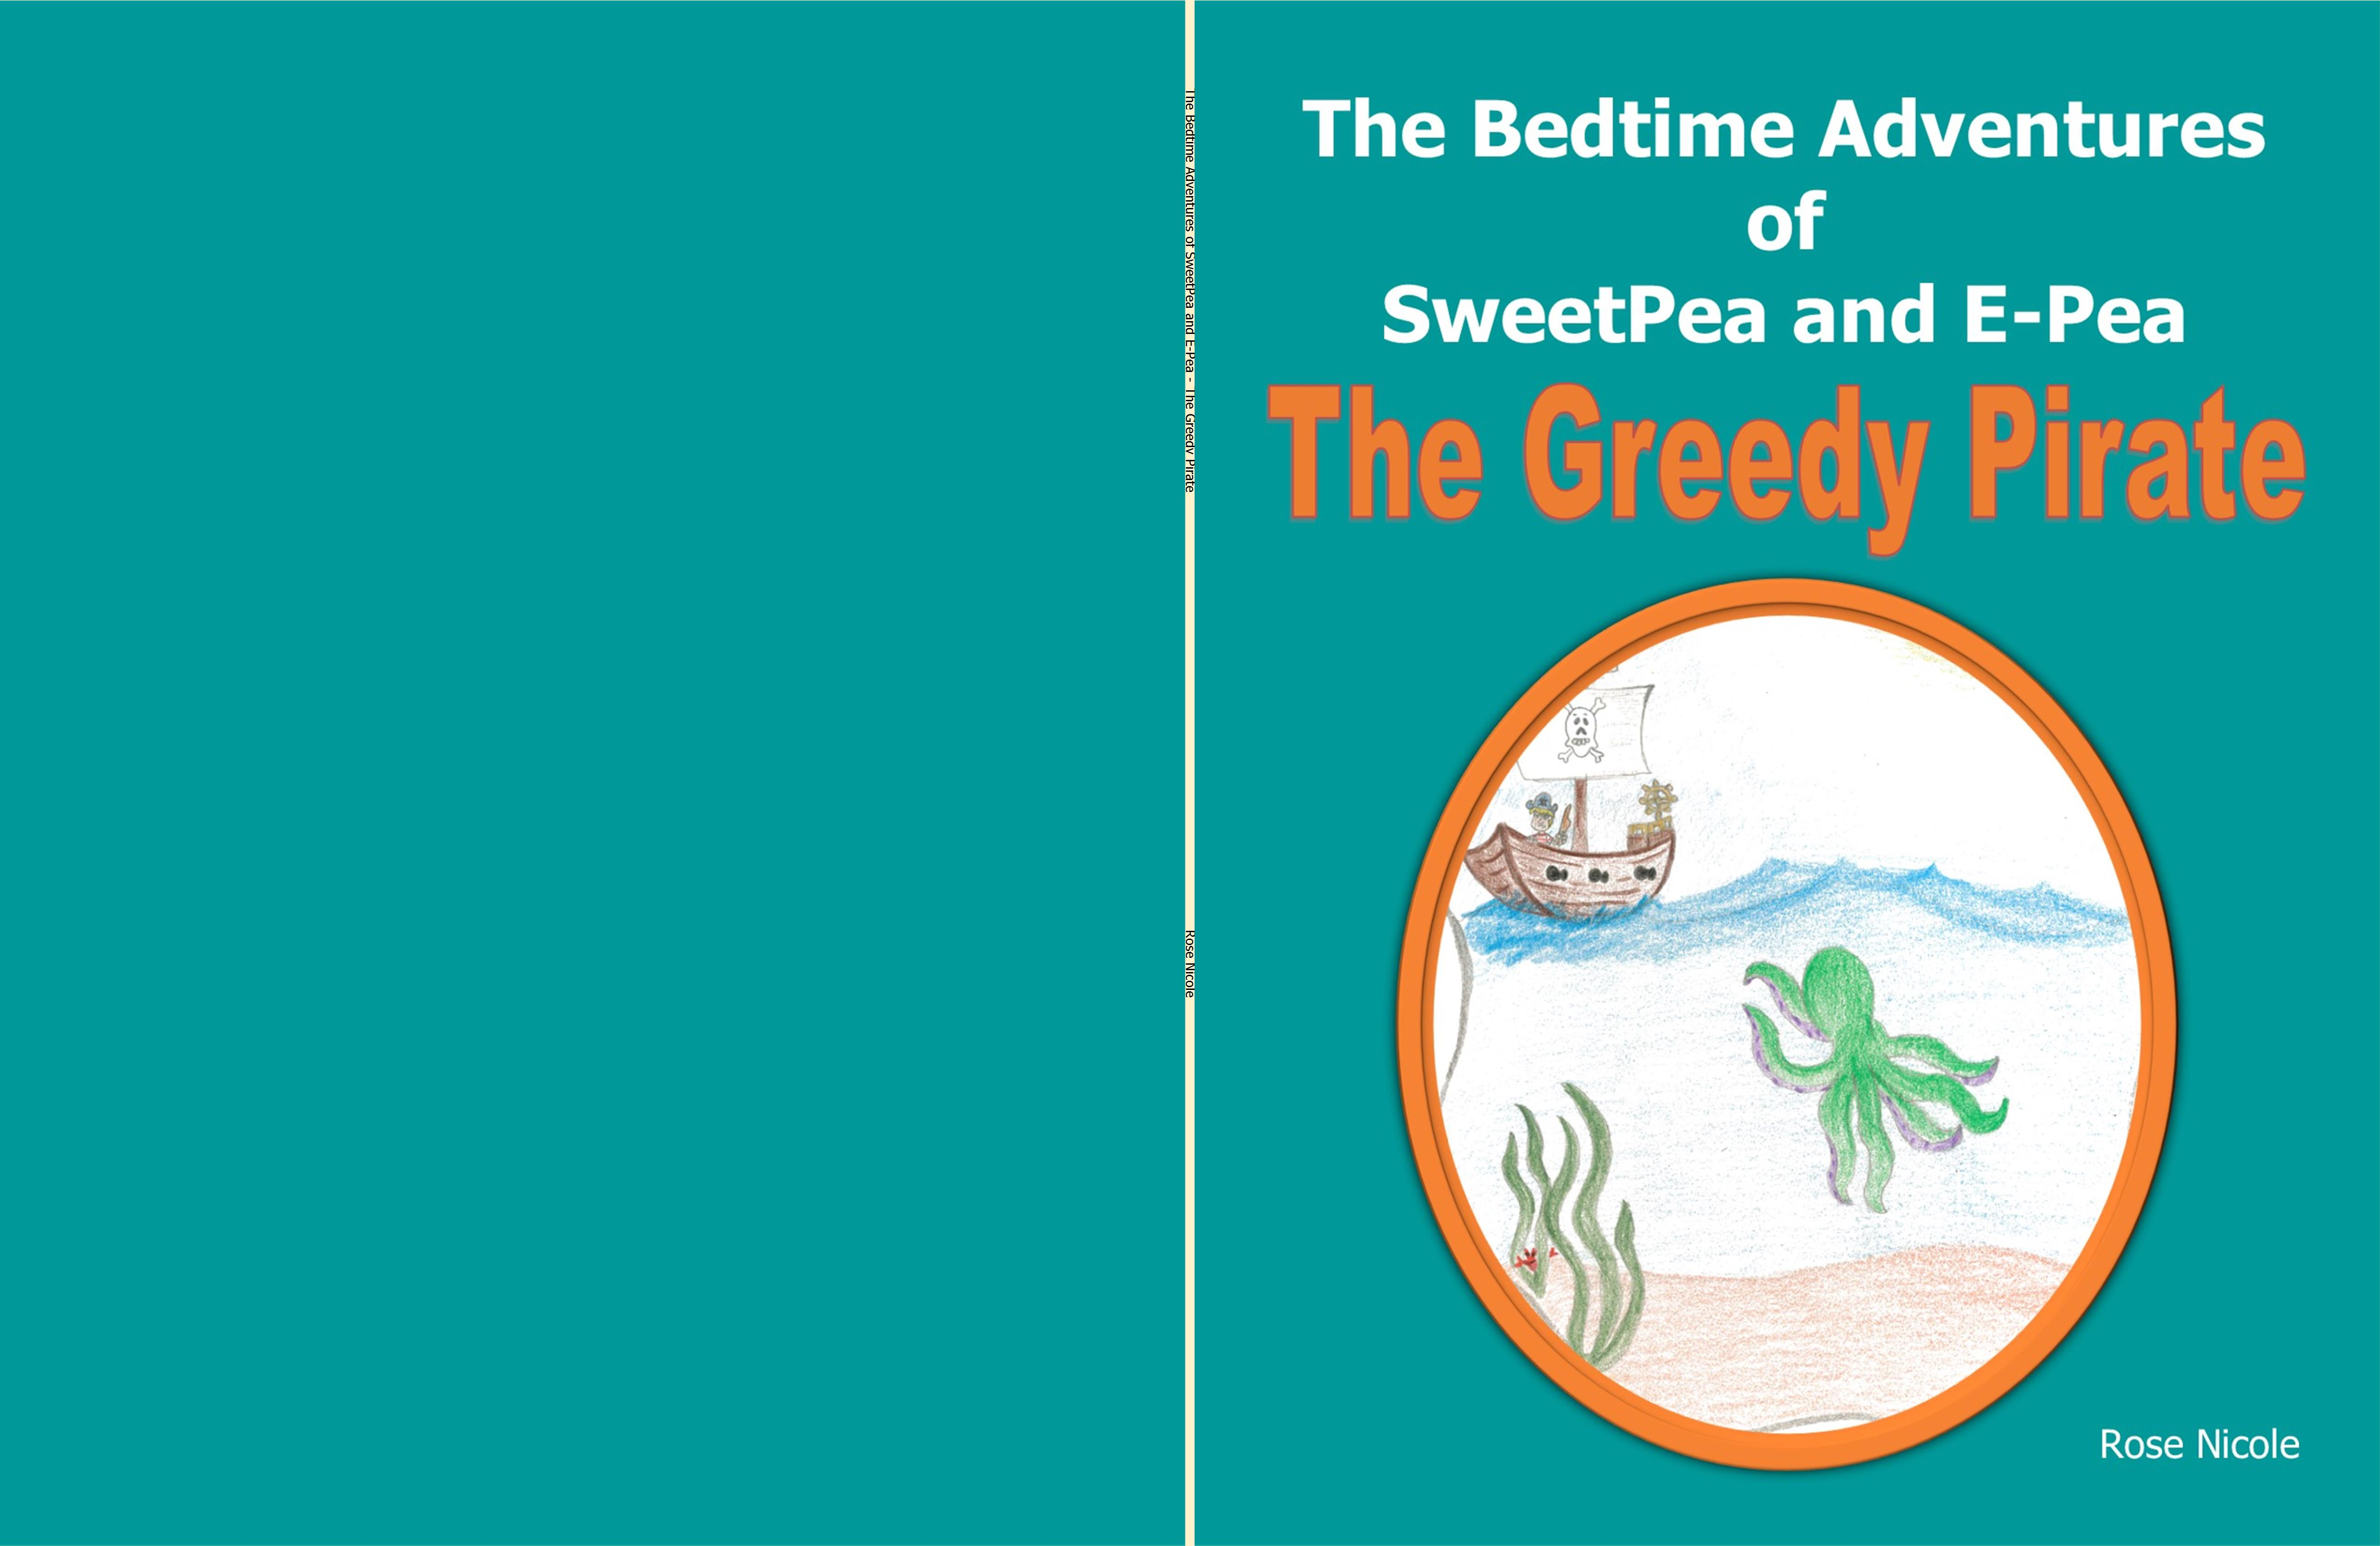 The Bedtime Adventures of SweetPea and E-Pea - The Greedy Pirate cover image